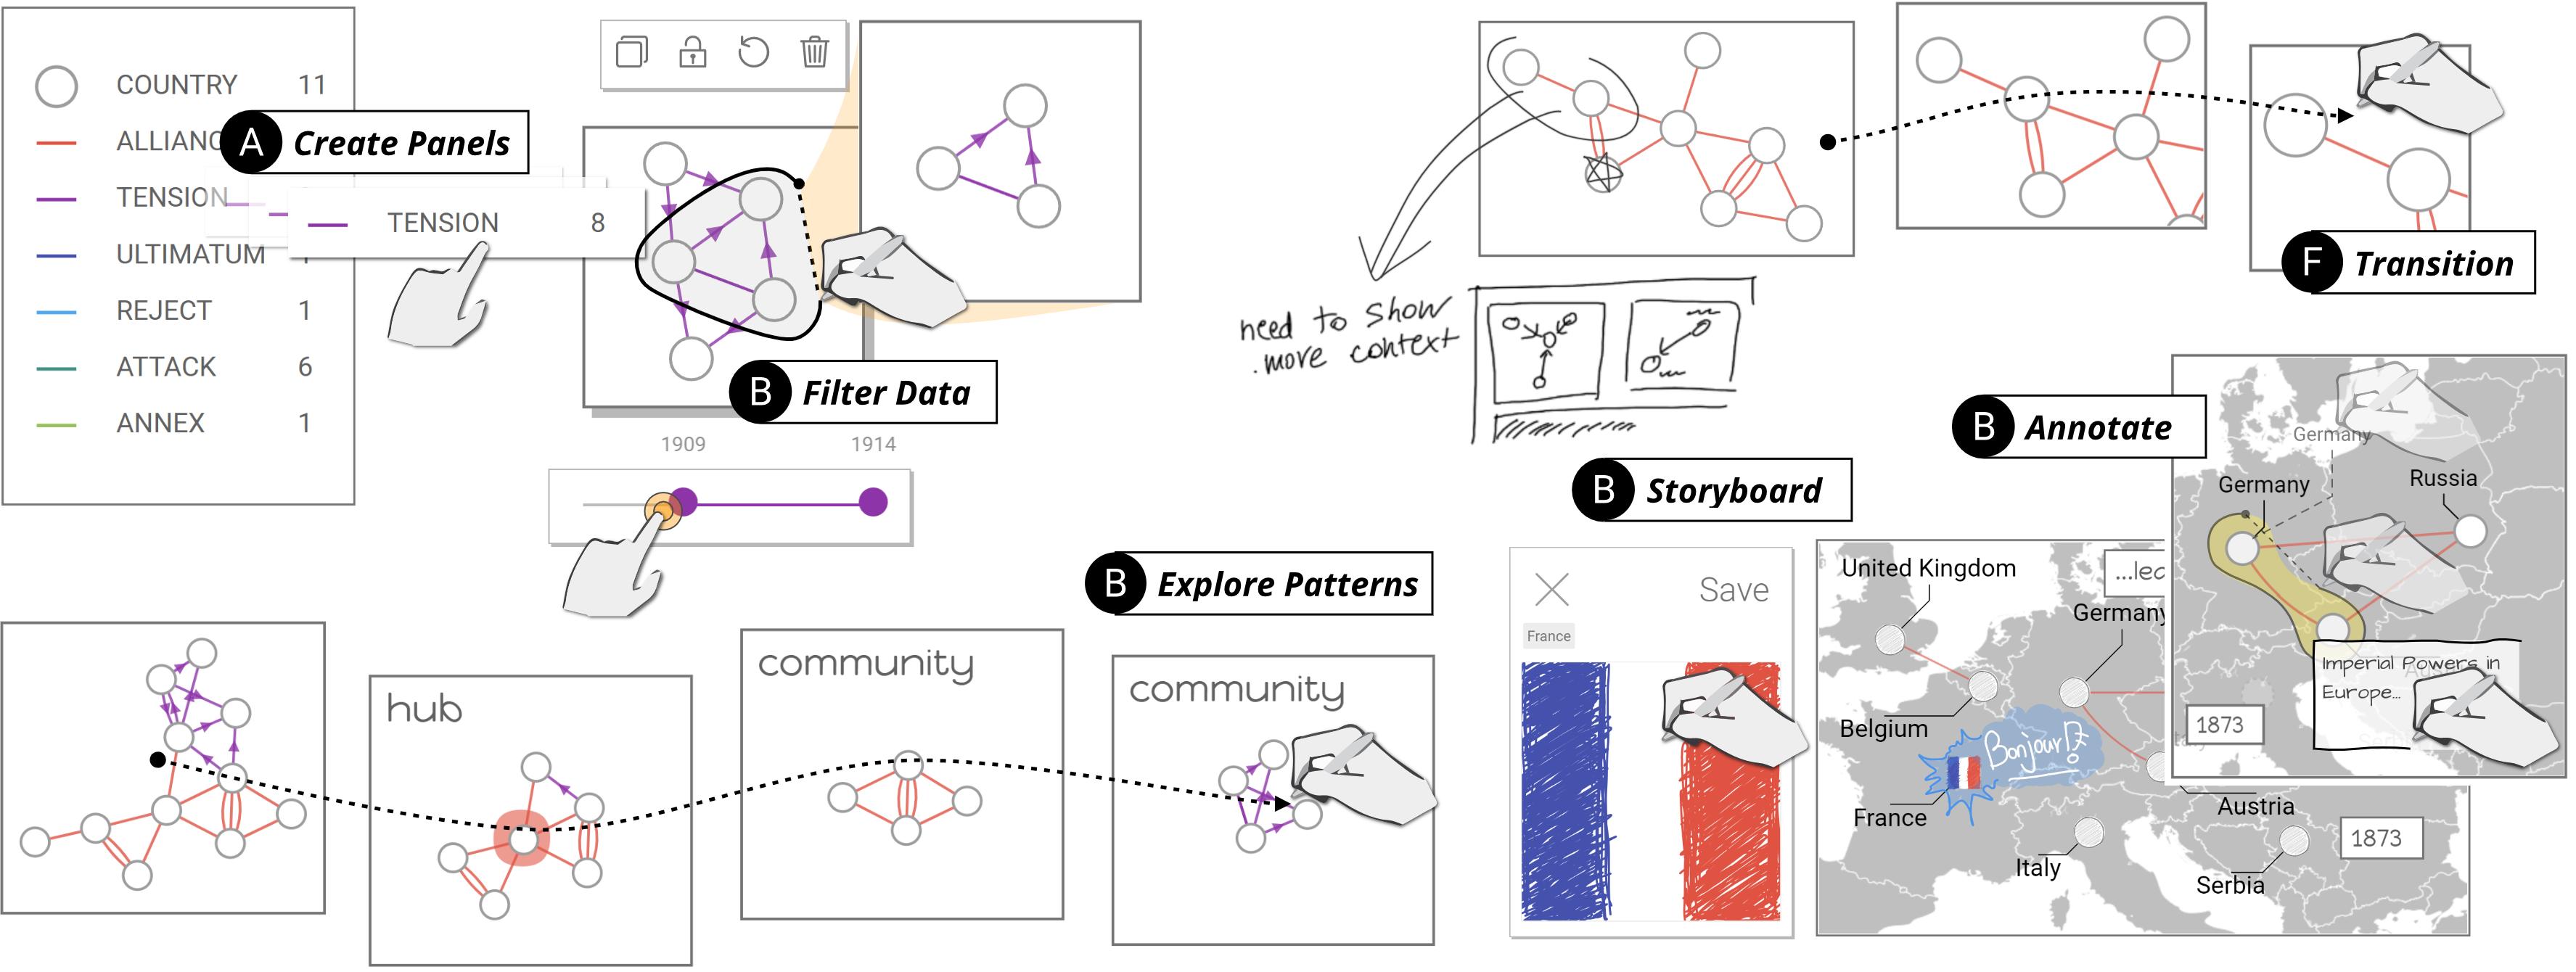 DataToon: Drawing Dynamic Network Comics With Pen + Touch Interaction